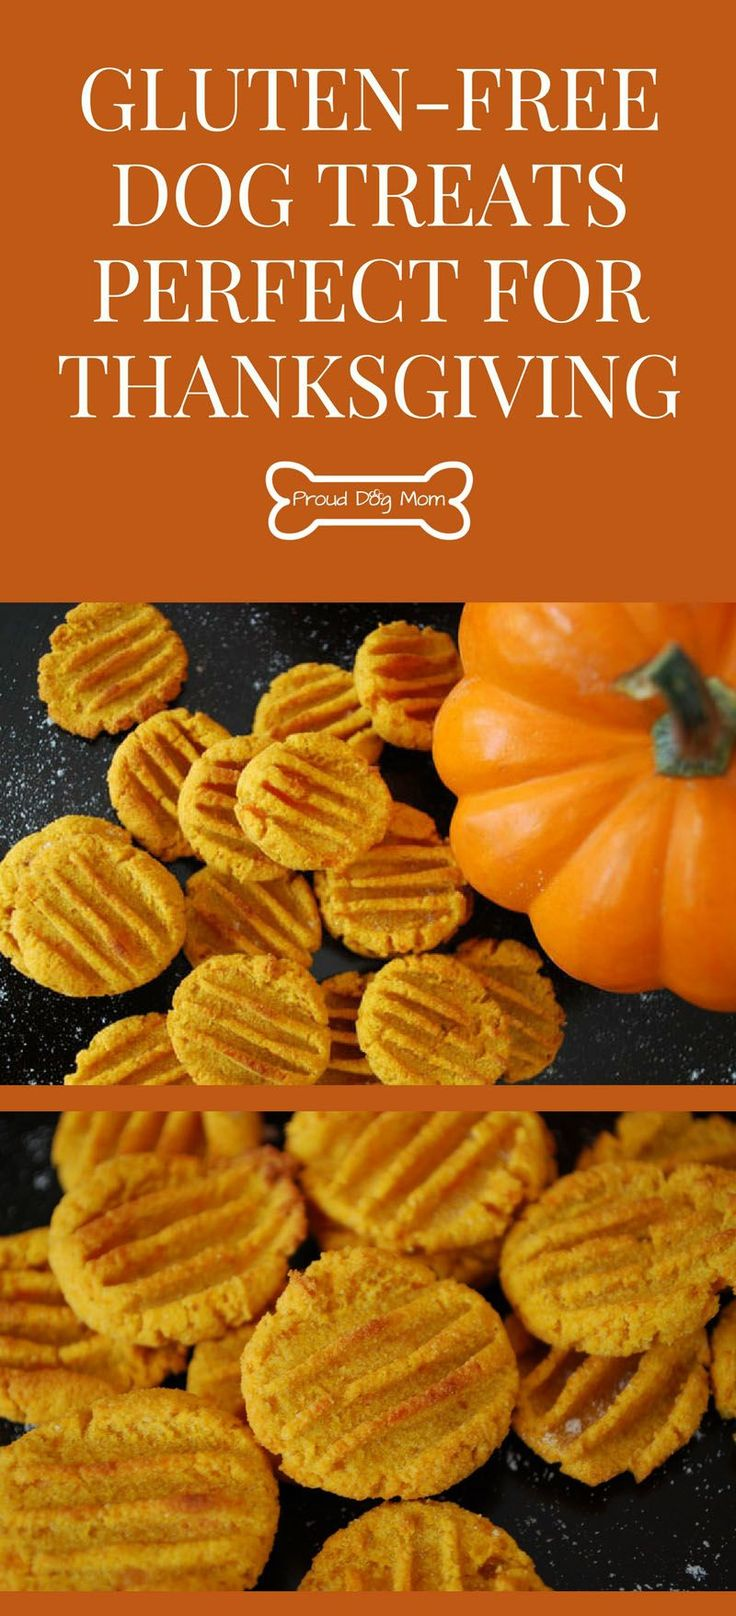 Food faith amp design thanksgiving goodies - Diy Dog Treats Pumpkin Sweet Potato Bites